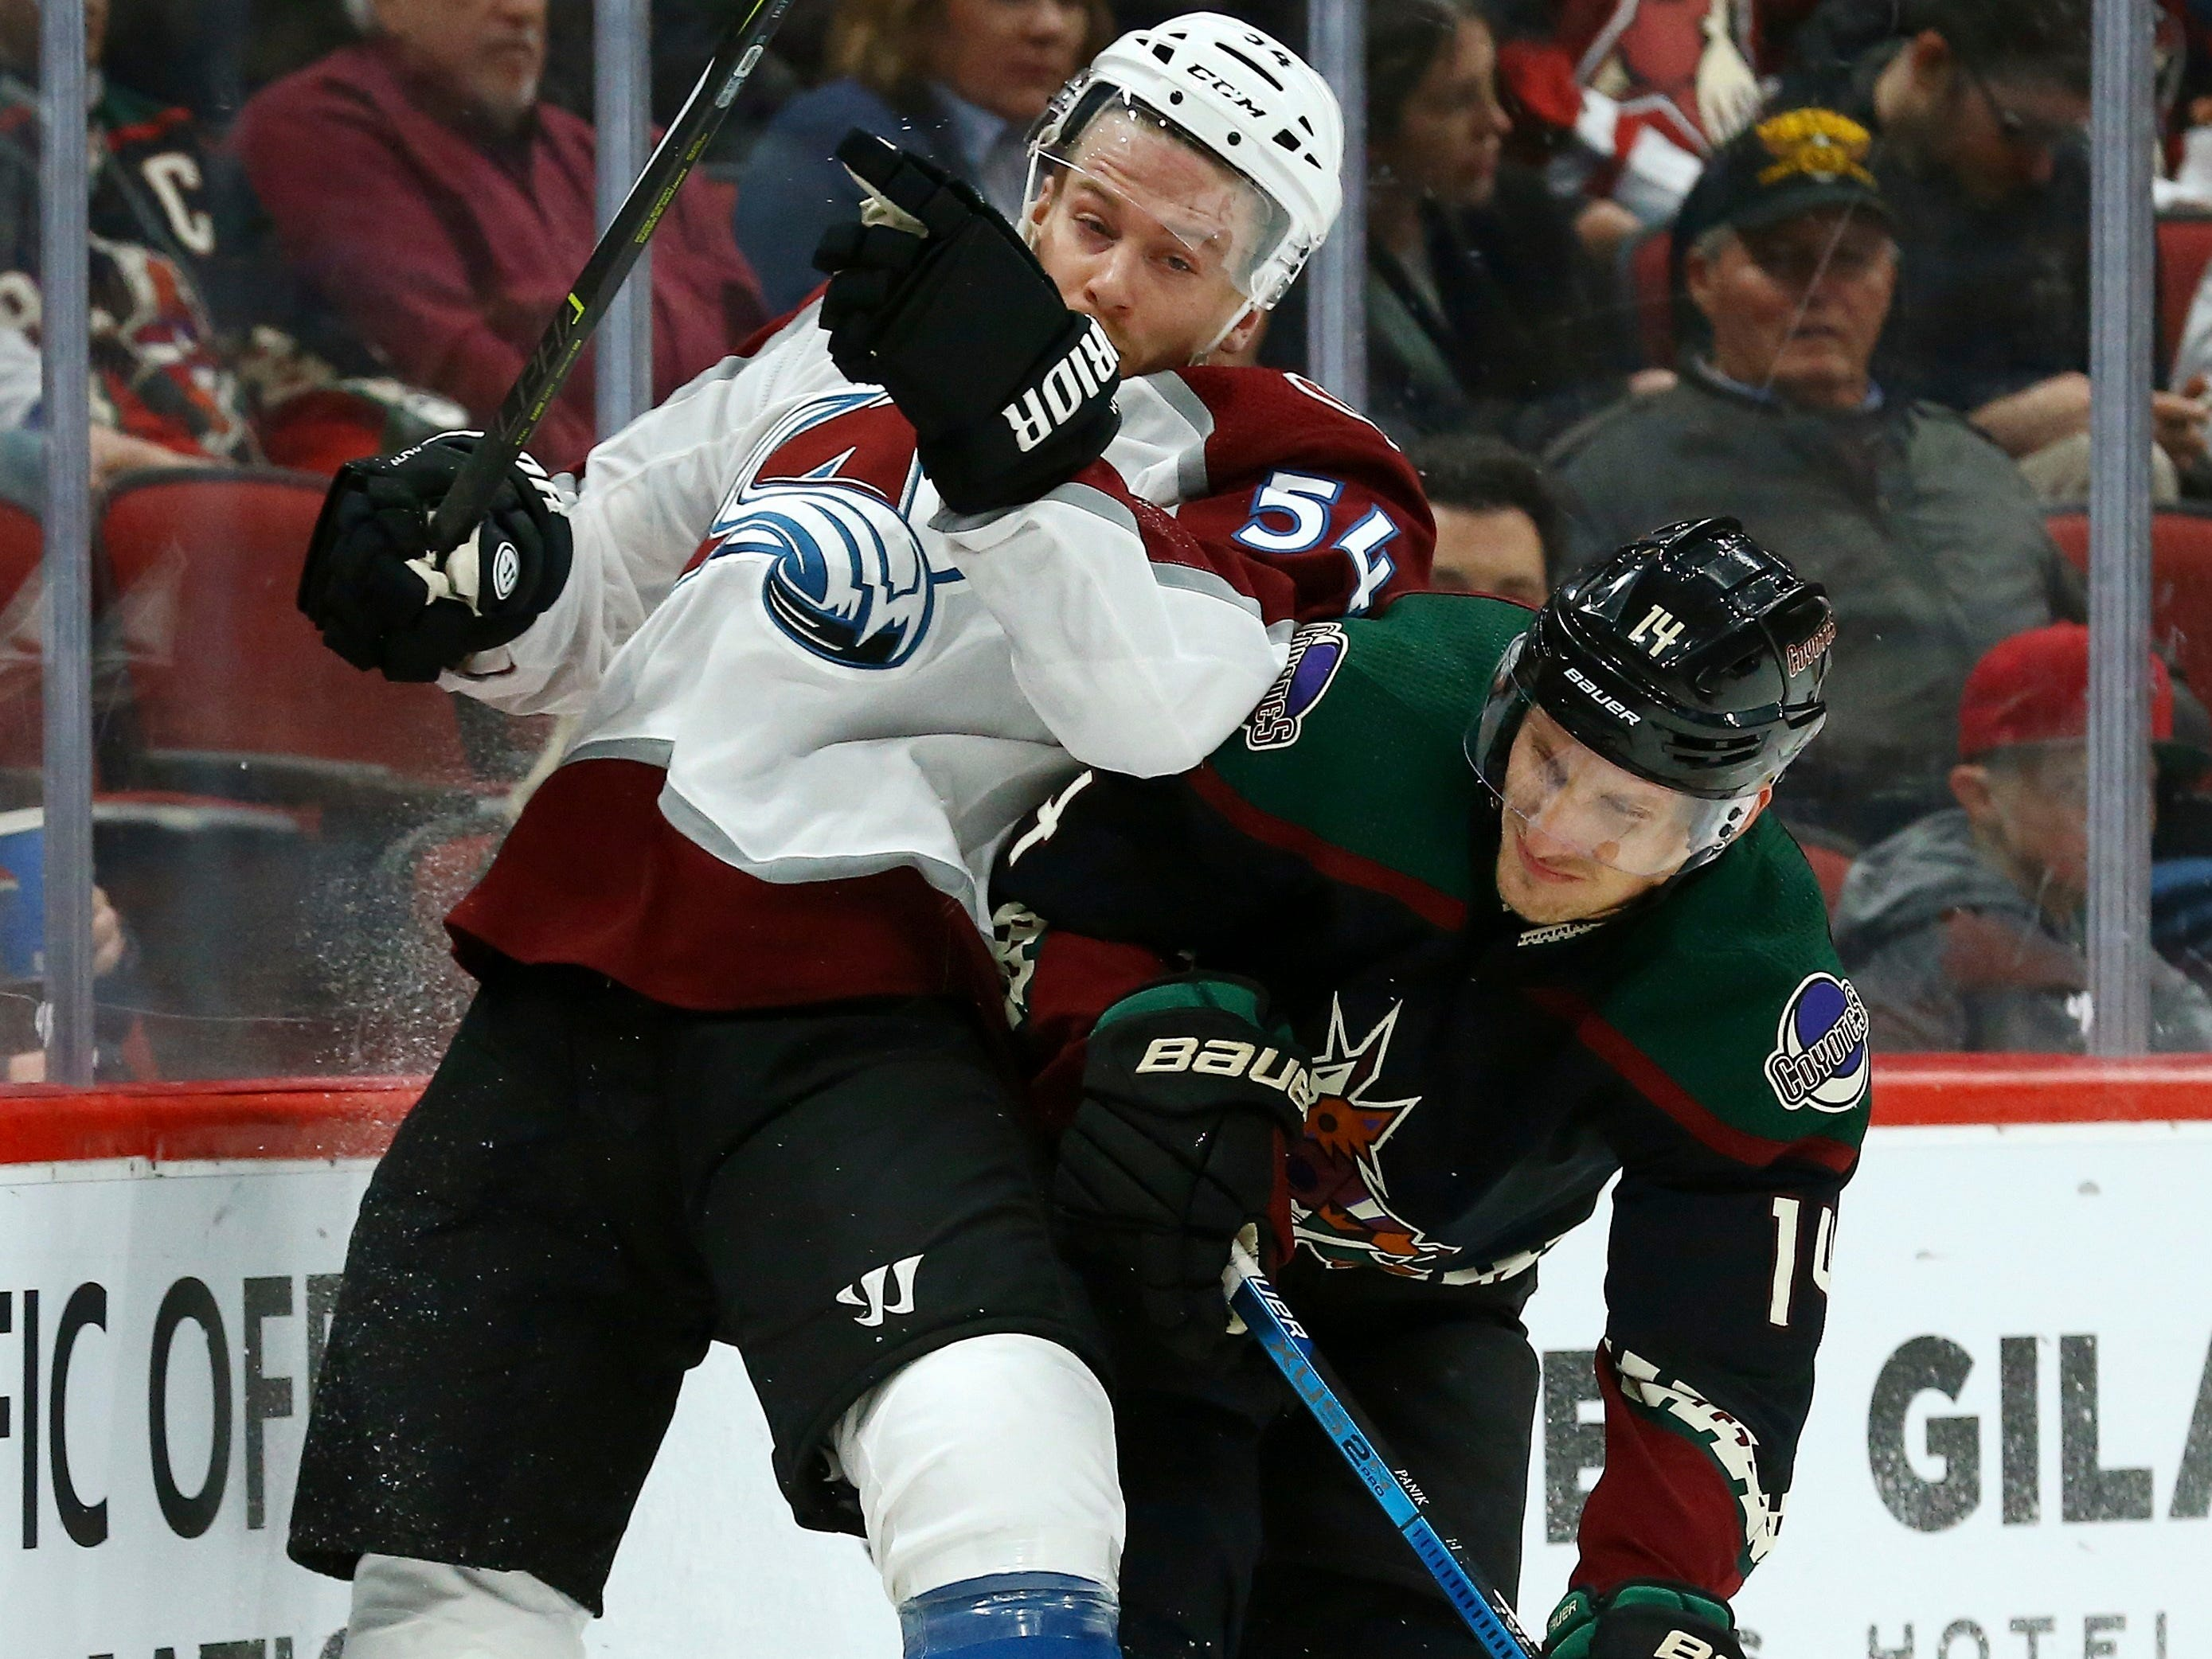 Arizona Coyotes right wing Richard Panik (14) checks Colorado Avalanche defenseman Anton Lindholm (54) into the boards during the second period of an NHL hockey game Saturday, Dec. 22, 2018, in Glendale, Ariz. (AP Photo/Ross D. Franklin)